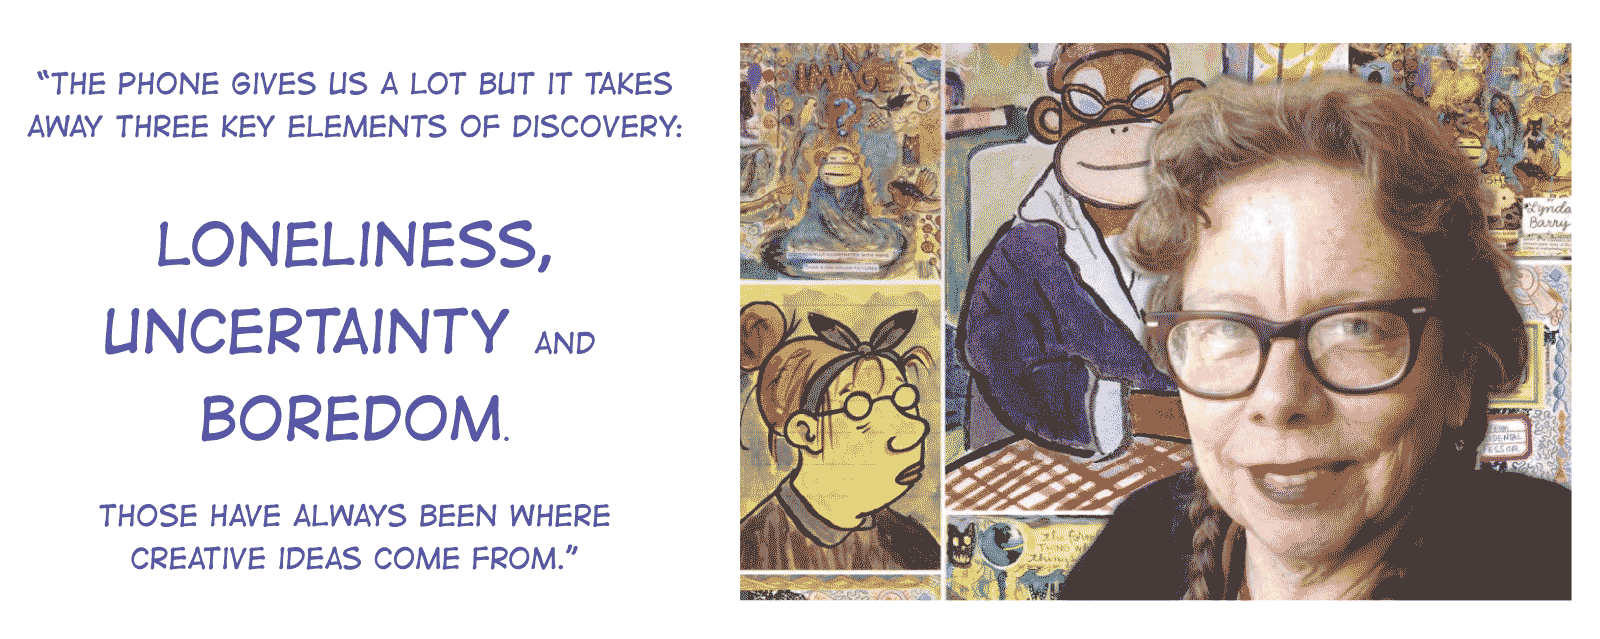 """The phone gives us a lot but it takes away three key elements of discovery: loneliness, uncertainty and boredom. Those have always been where creative ideas come from."" - Lynda Barry"